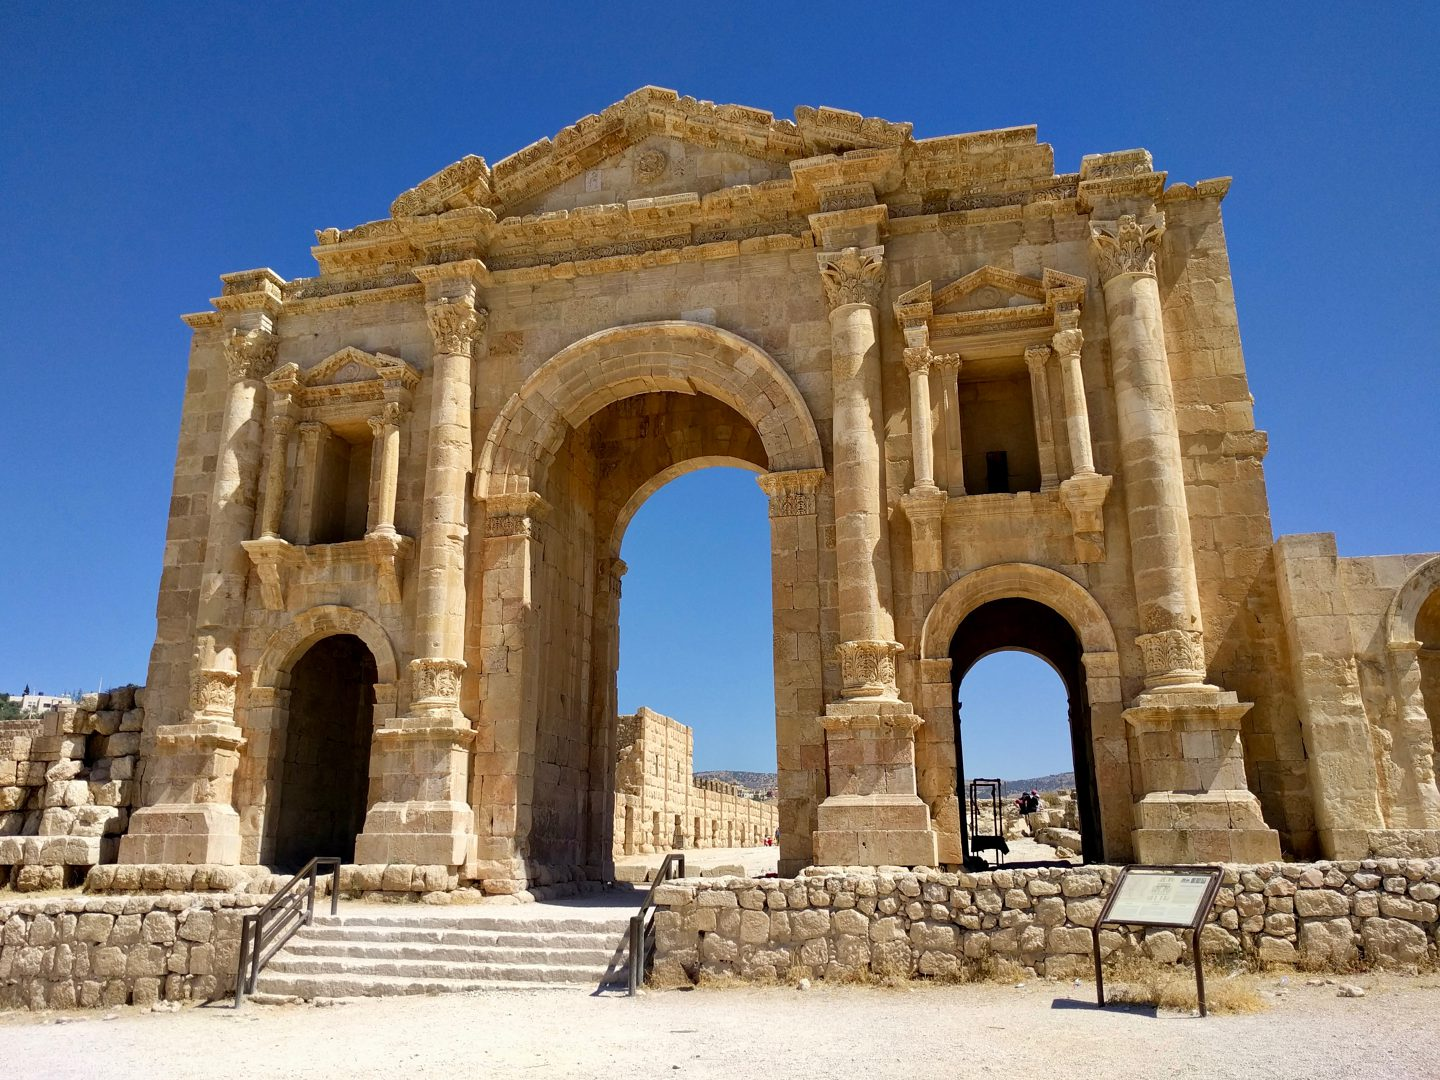 The Arch of Hadrian welcomes you to Jerash